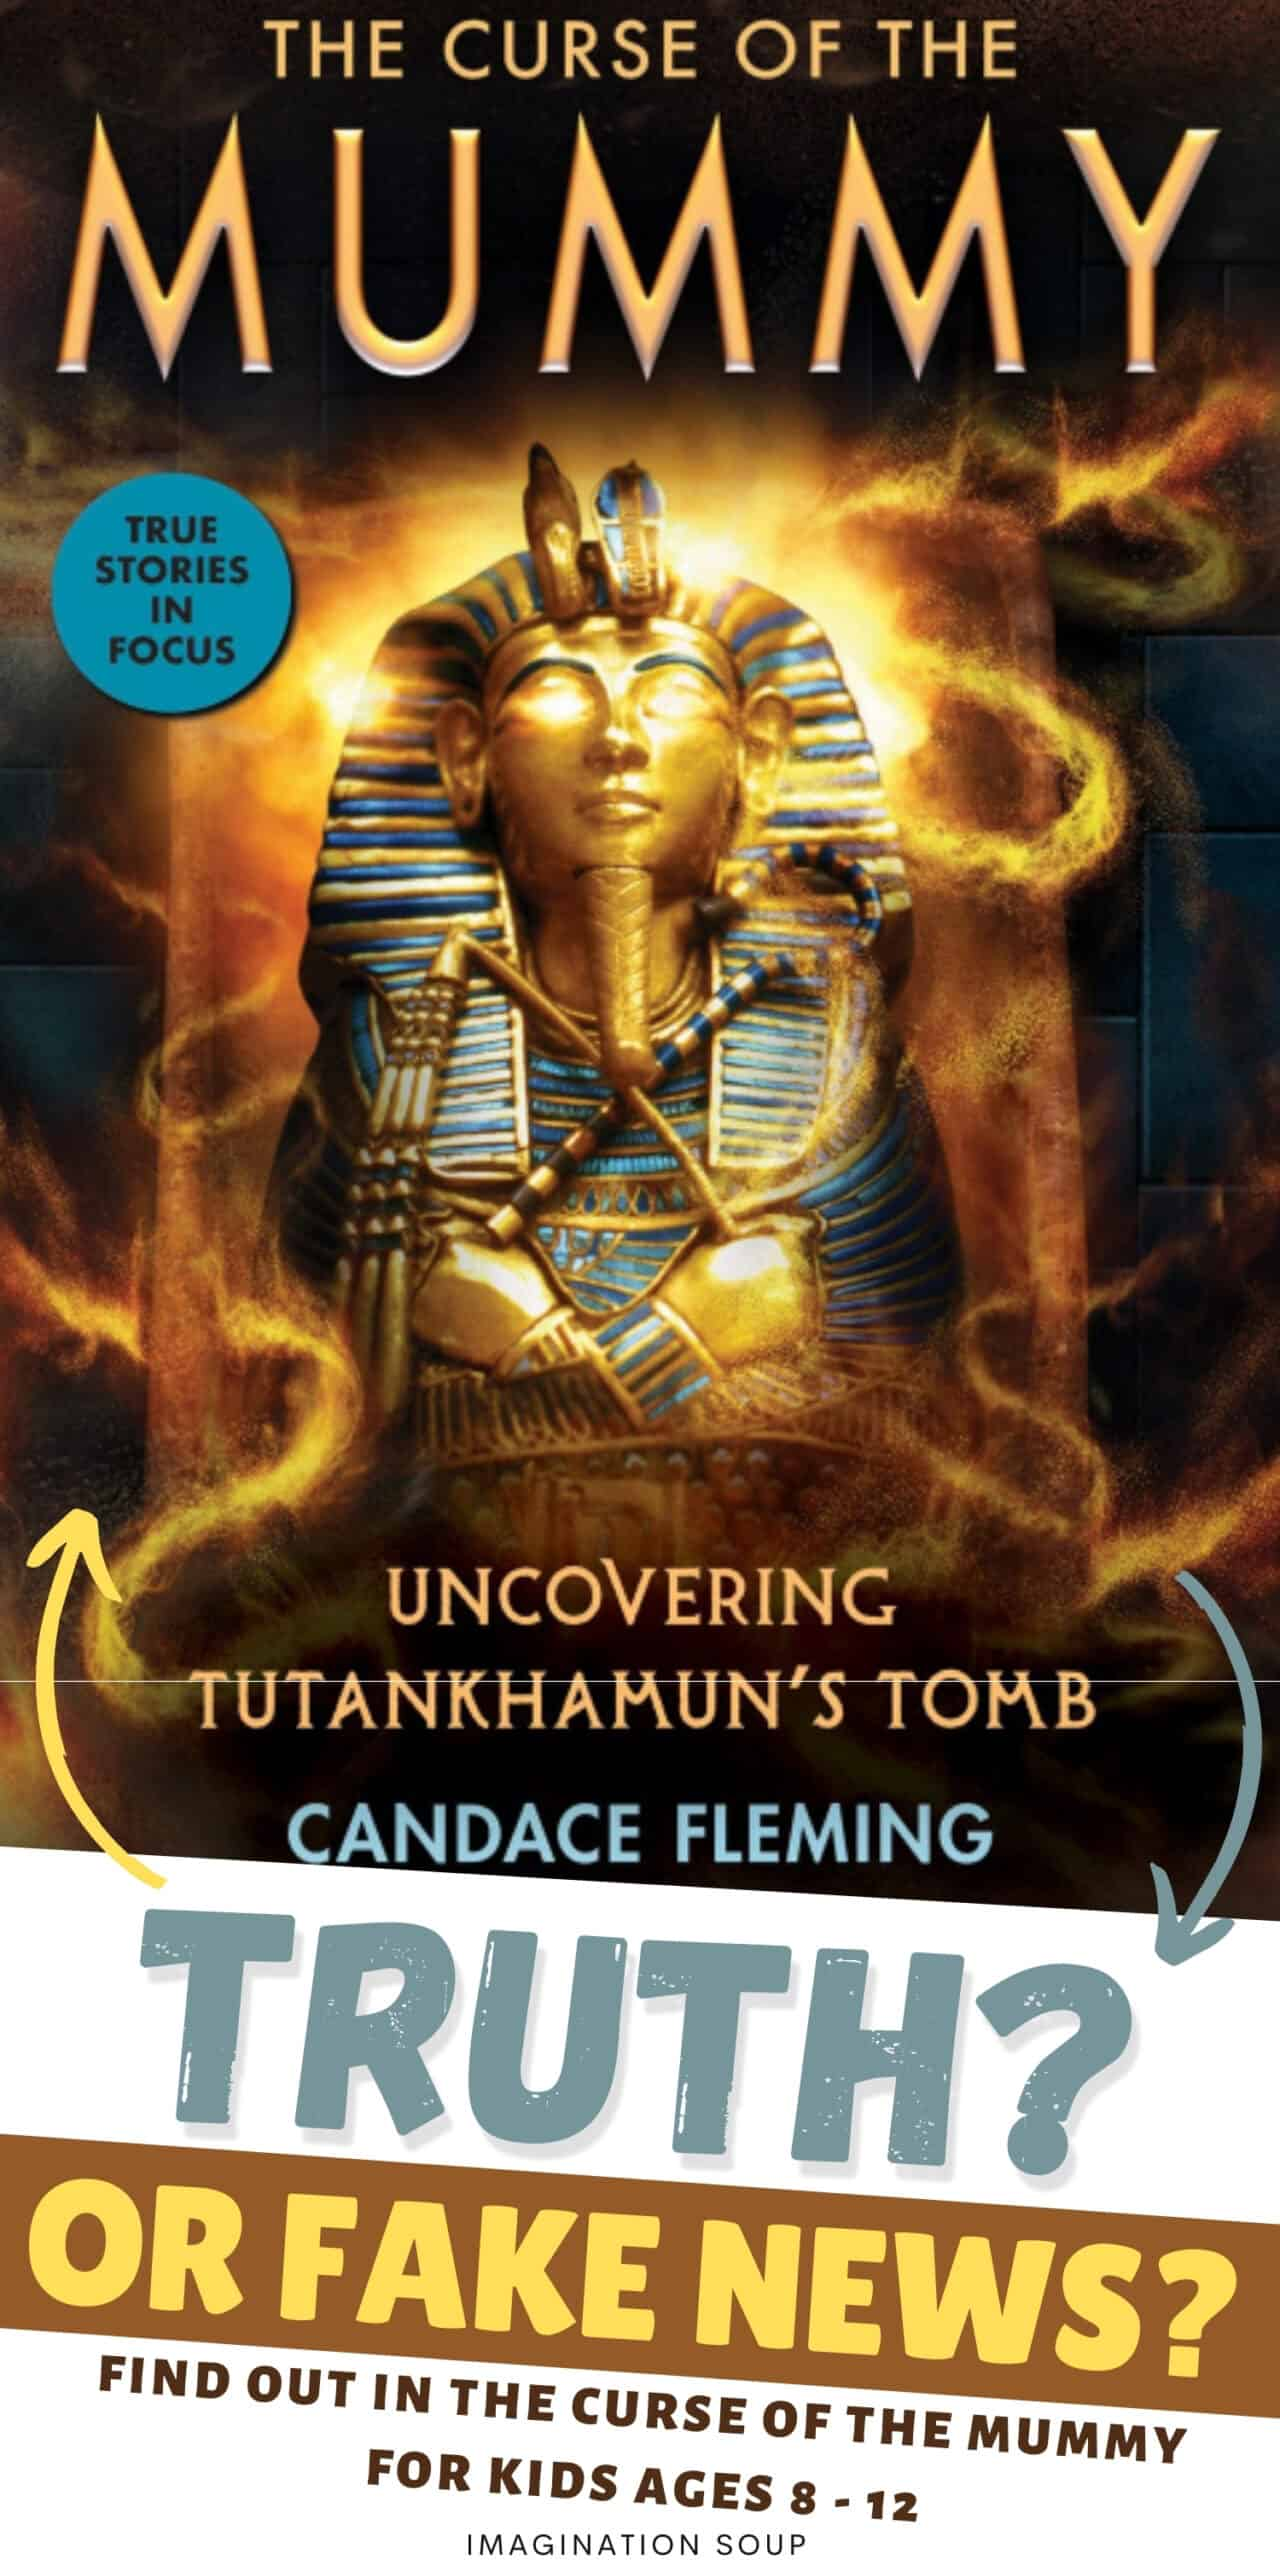 Was King Tut's Tomb Cursed? Truth or Fake News? Find out in Candace Flemming's new book, The Curse of the Mummy